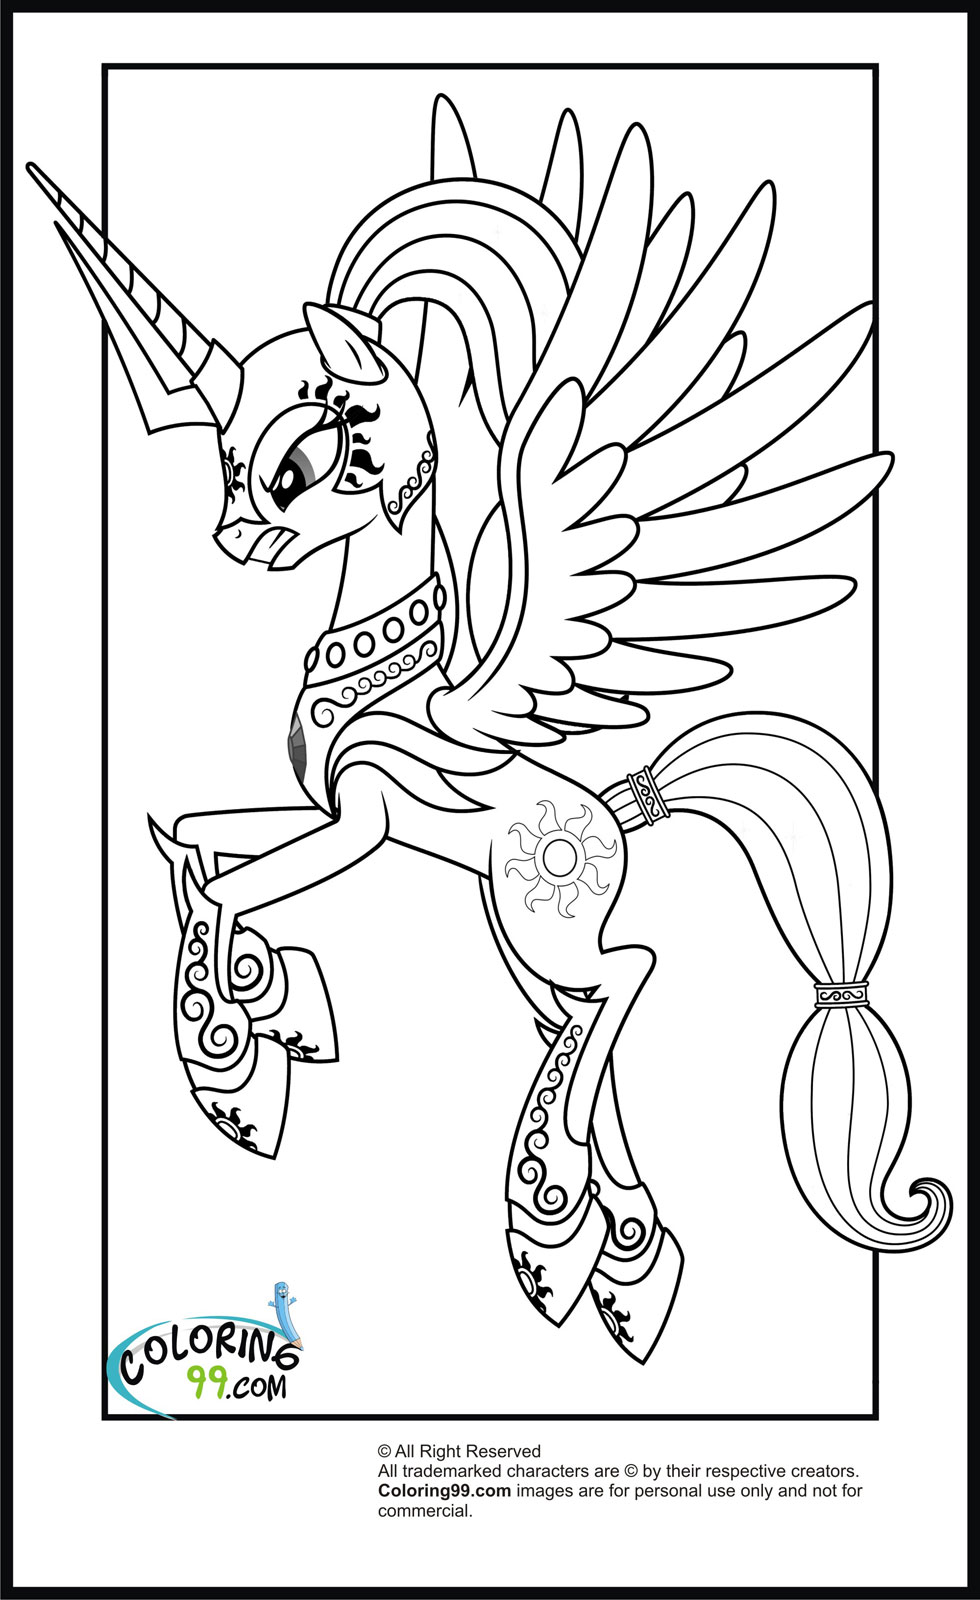 mlp color ponies from ponyville coloring pages free printable mlp color